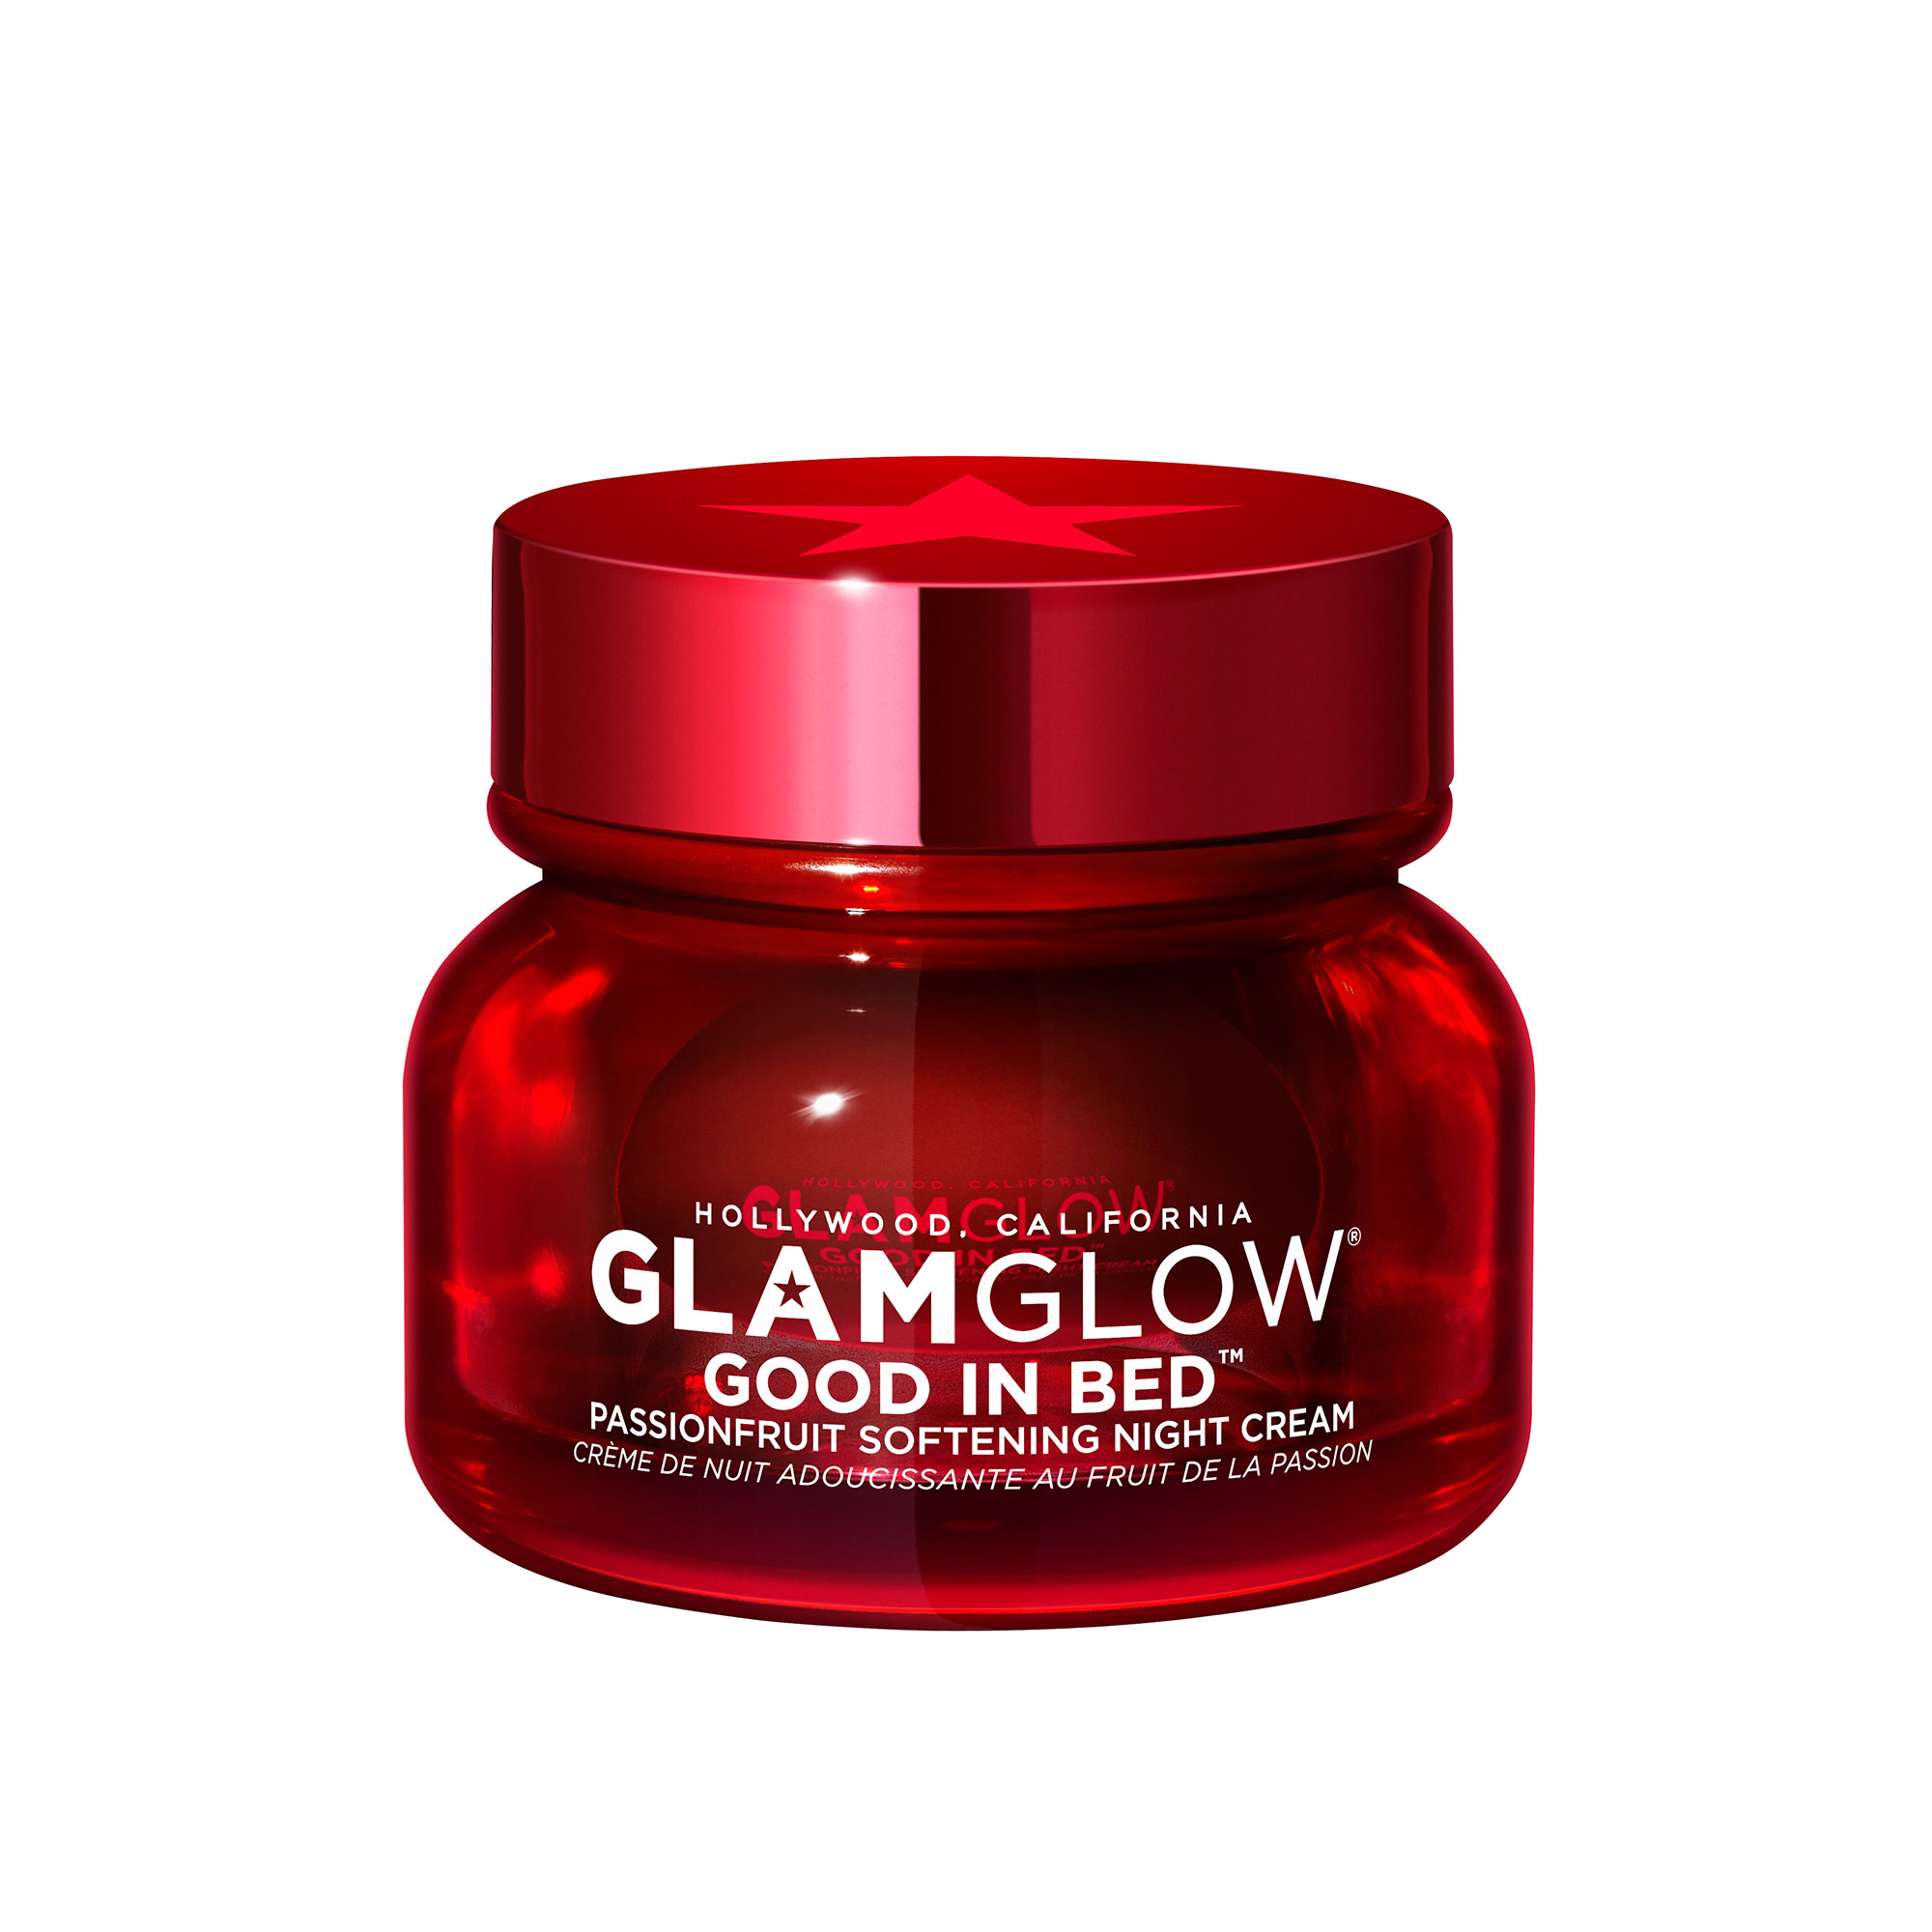 Valentine's Day Gift Guide 2019: Beauty and Fashion Ideas for the Lady in Your Life - Don't let the tongue-in-cheek name fool you, this glow-inducing moisturizer is packed with hydrating hyaluronic acid and exfoliating AHA, BHA and PHA acids that together give new meaning to the idea of beauty sleep. $65, sephora.com